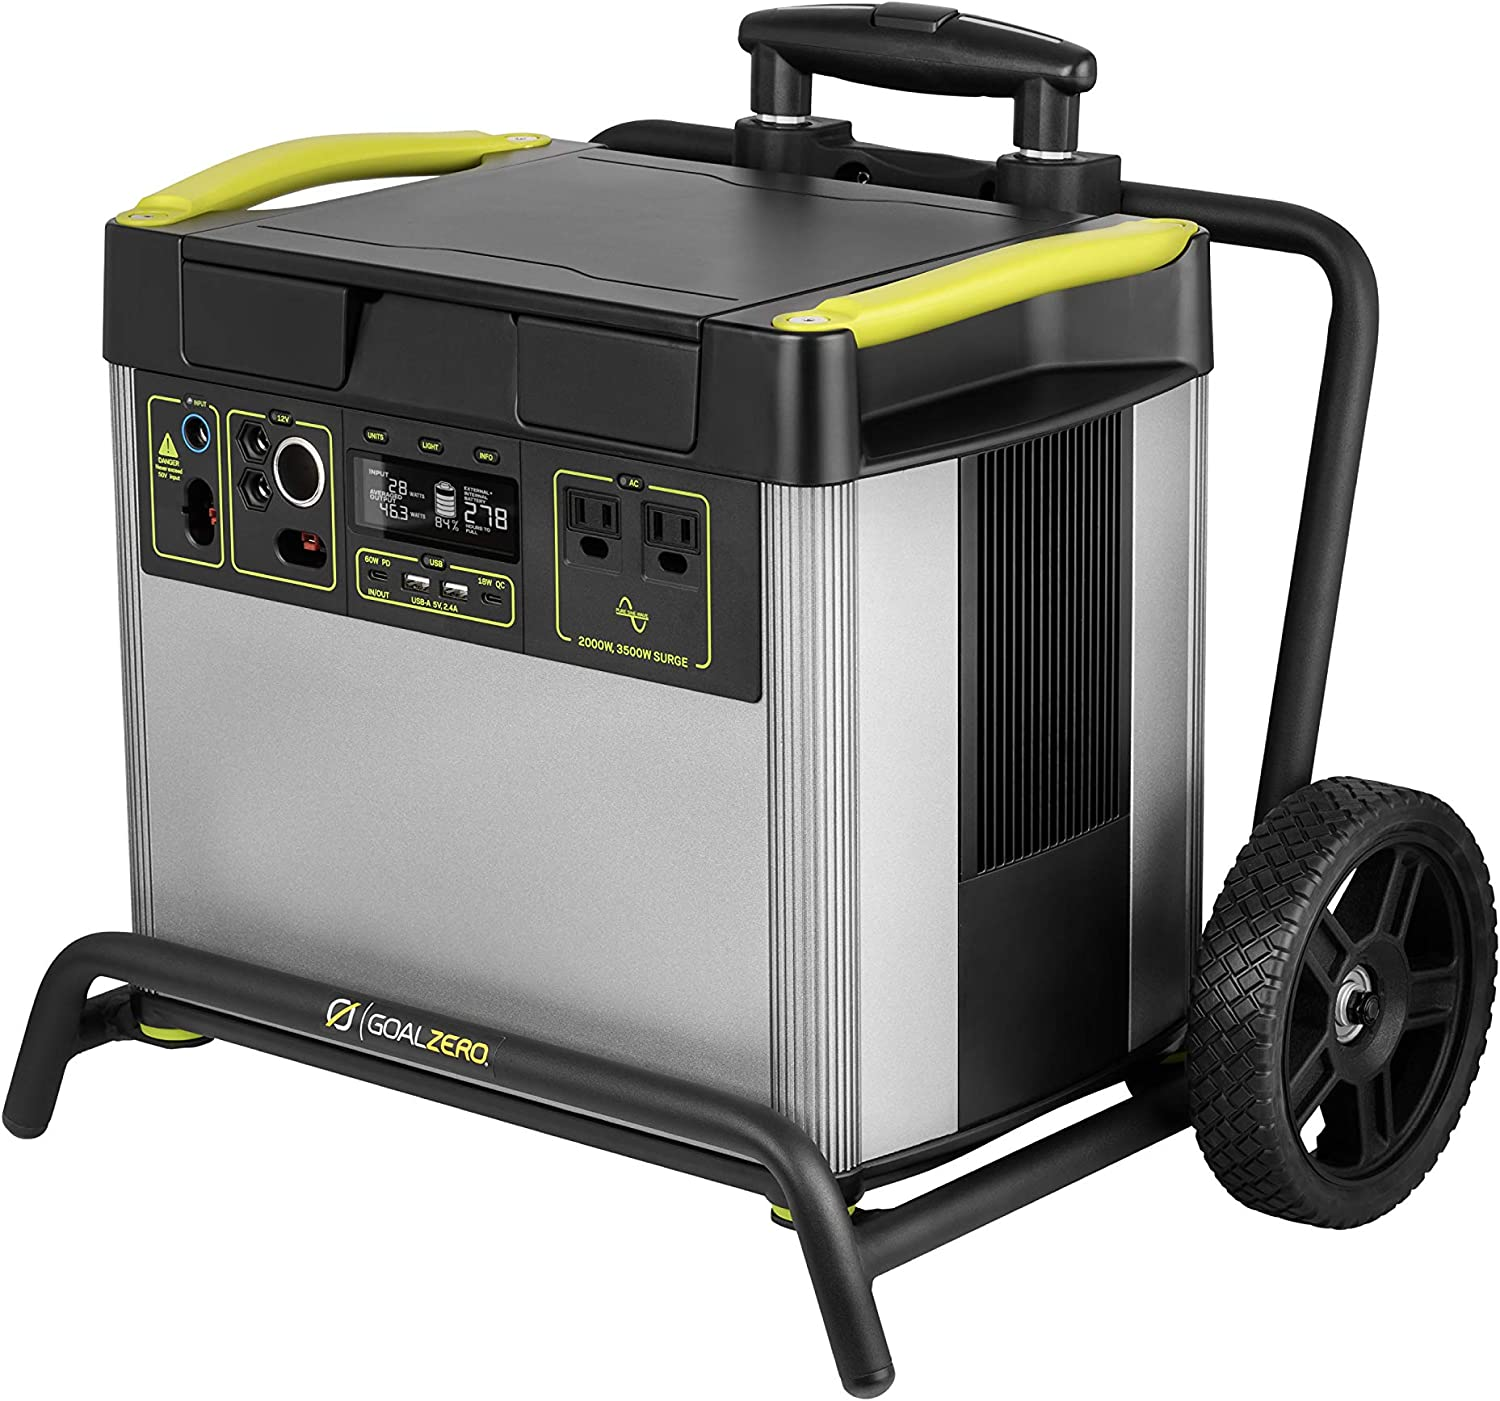 Oakland Mall Yeti Free shipping on posting reviews 3000X Portable Power Station 2982Wh Batte Lithium